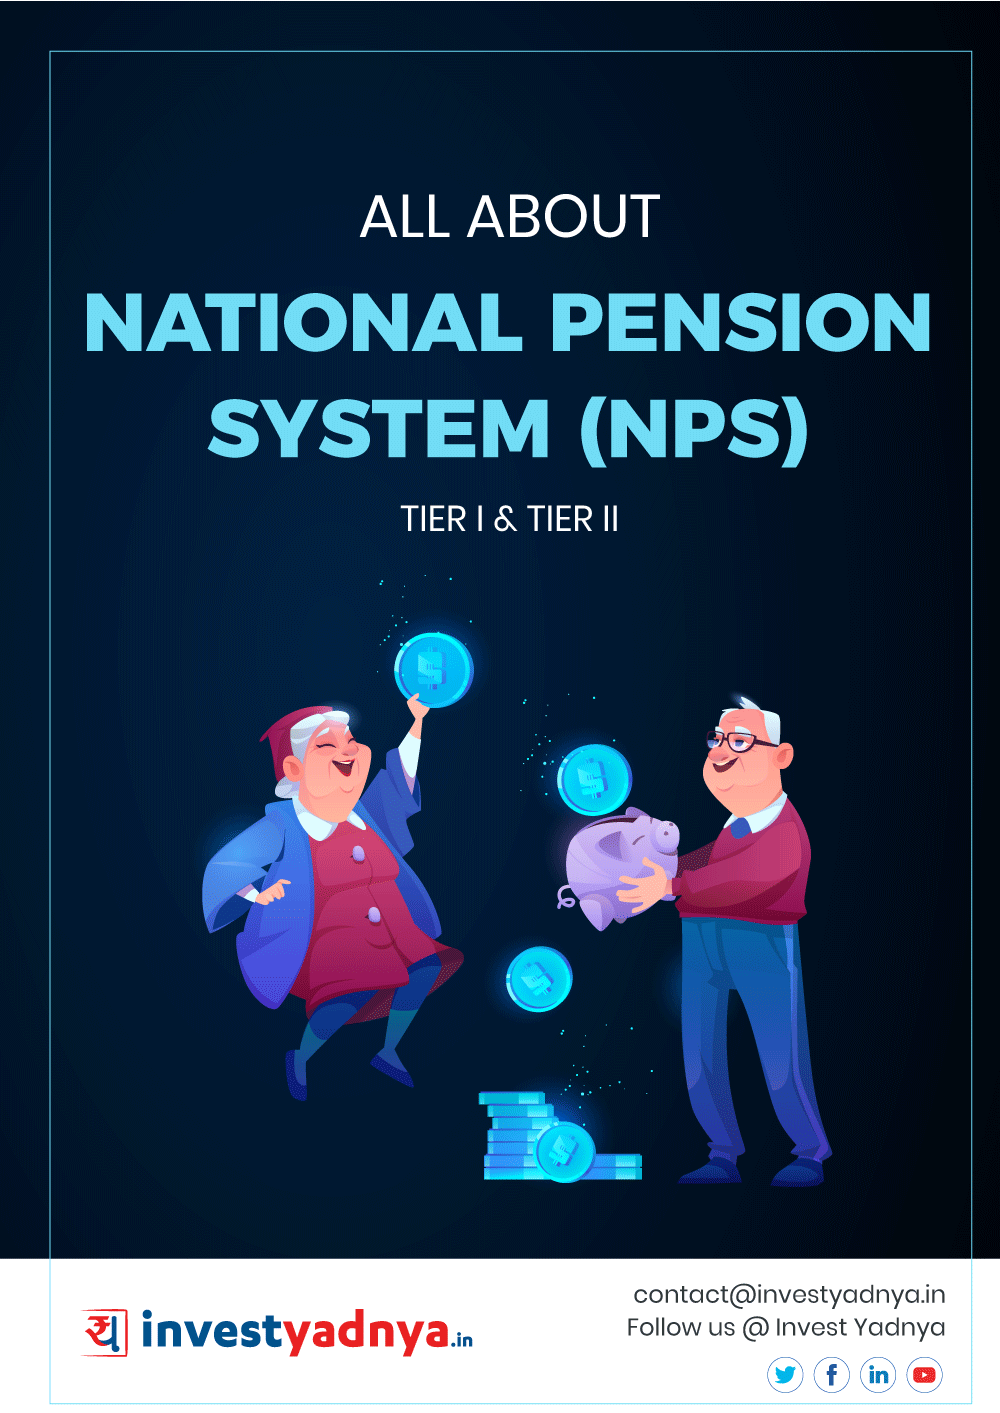 This e-book offers comprehensive information & analysis of National Pension Scheme (NPS) in India. It provides answers to the scheme related questions of both government & private employees. ✔ Detailed Research ✔ Quality Reports